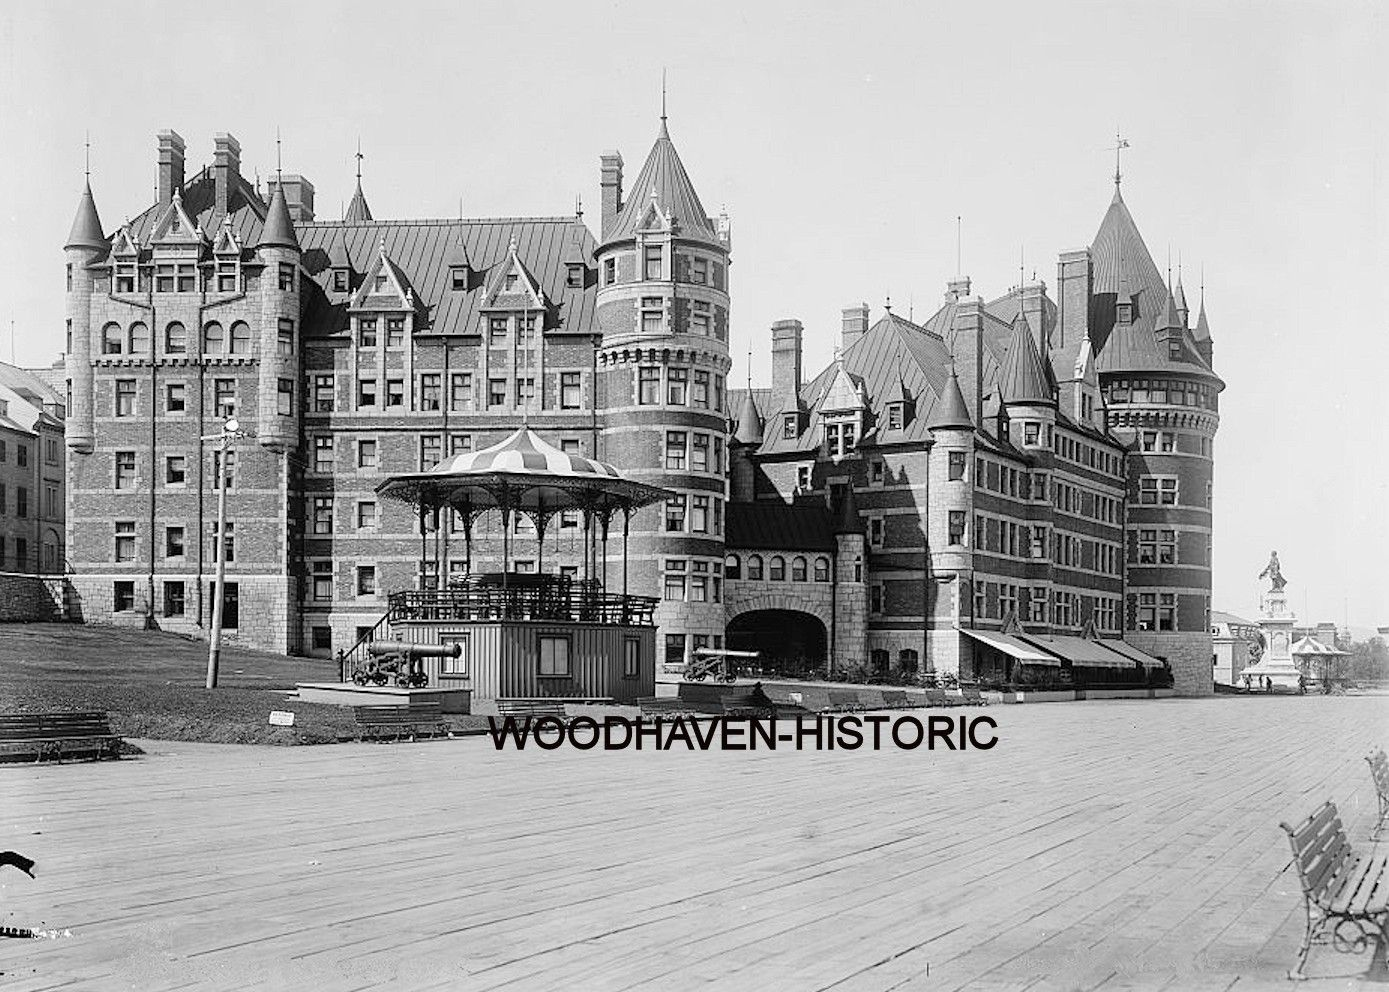 chateau frontenac quebec 1890 photo quebec history pinterest qu bec ville de qu bec et. Black Bedroom Furniture Sets. Home Design Ideas